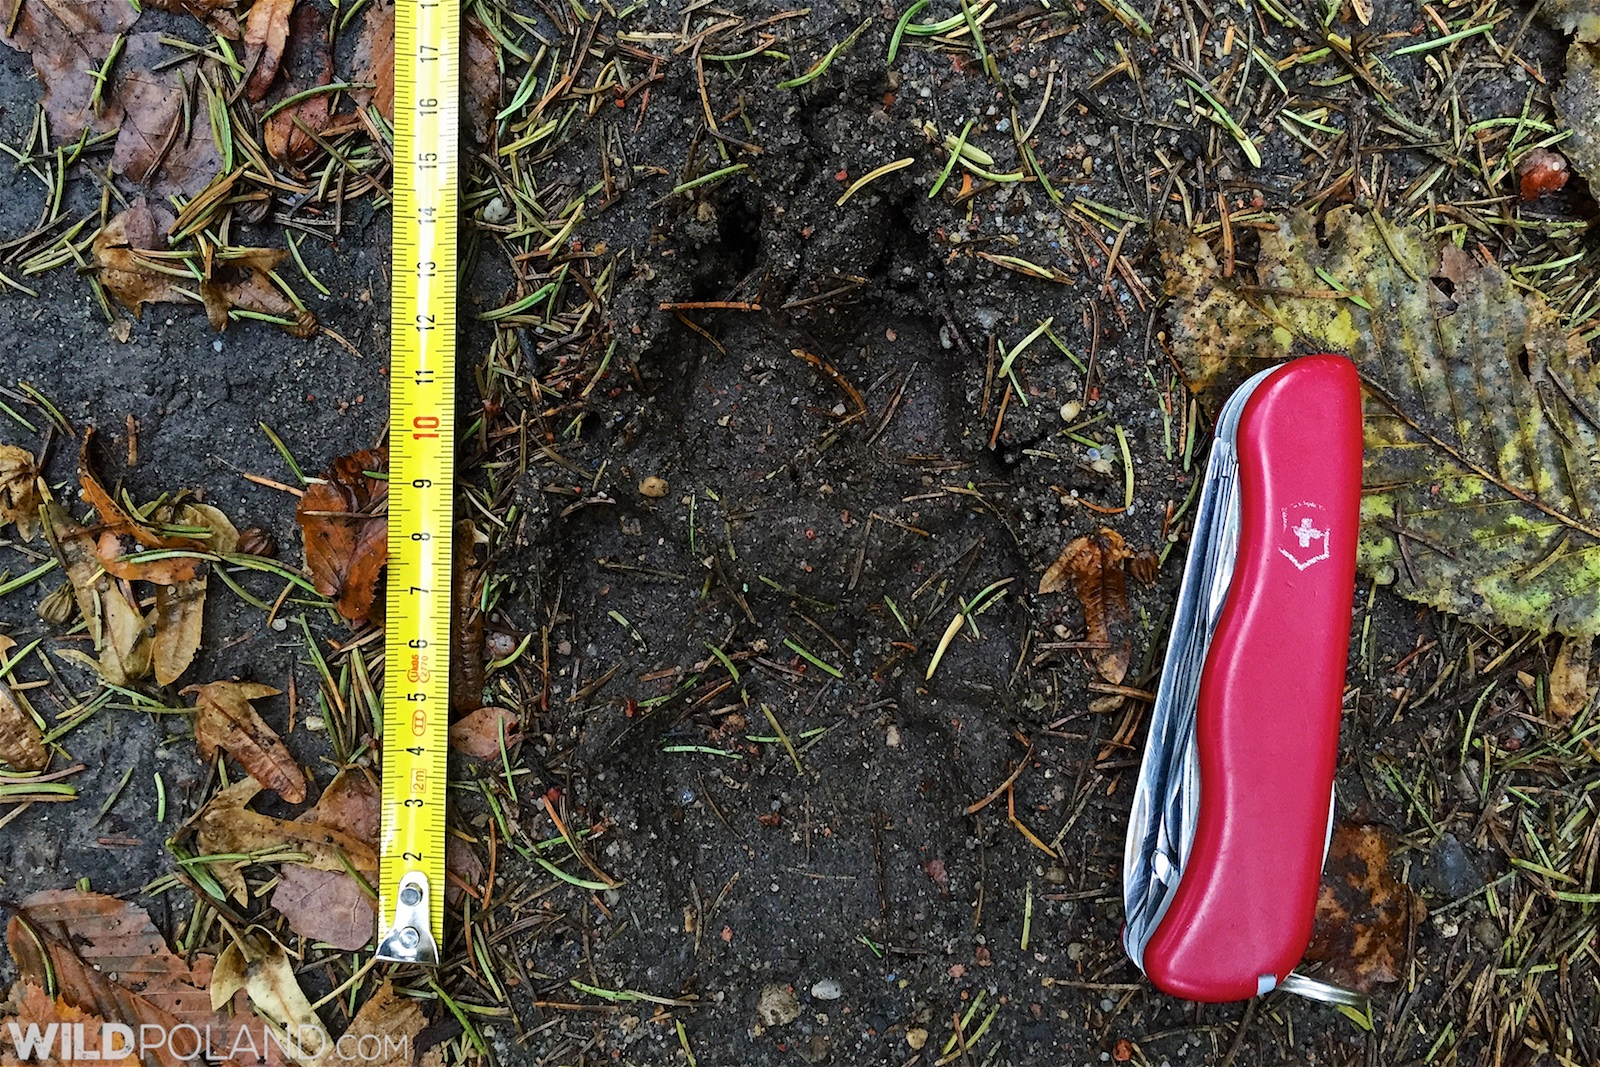 Bison Safari & Wolf Tracking Trip Report – Mid Oct 2015